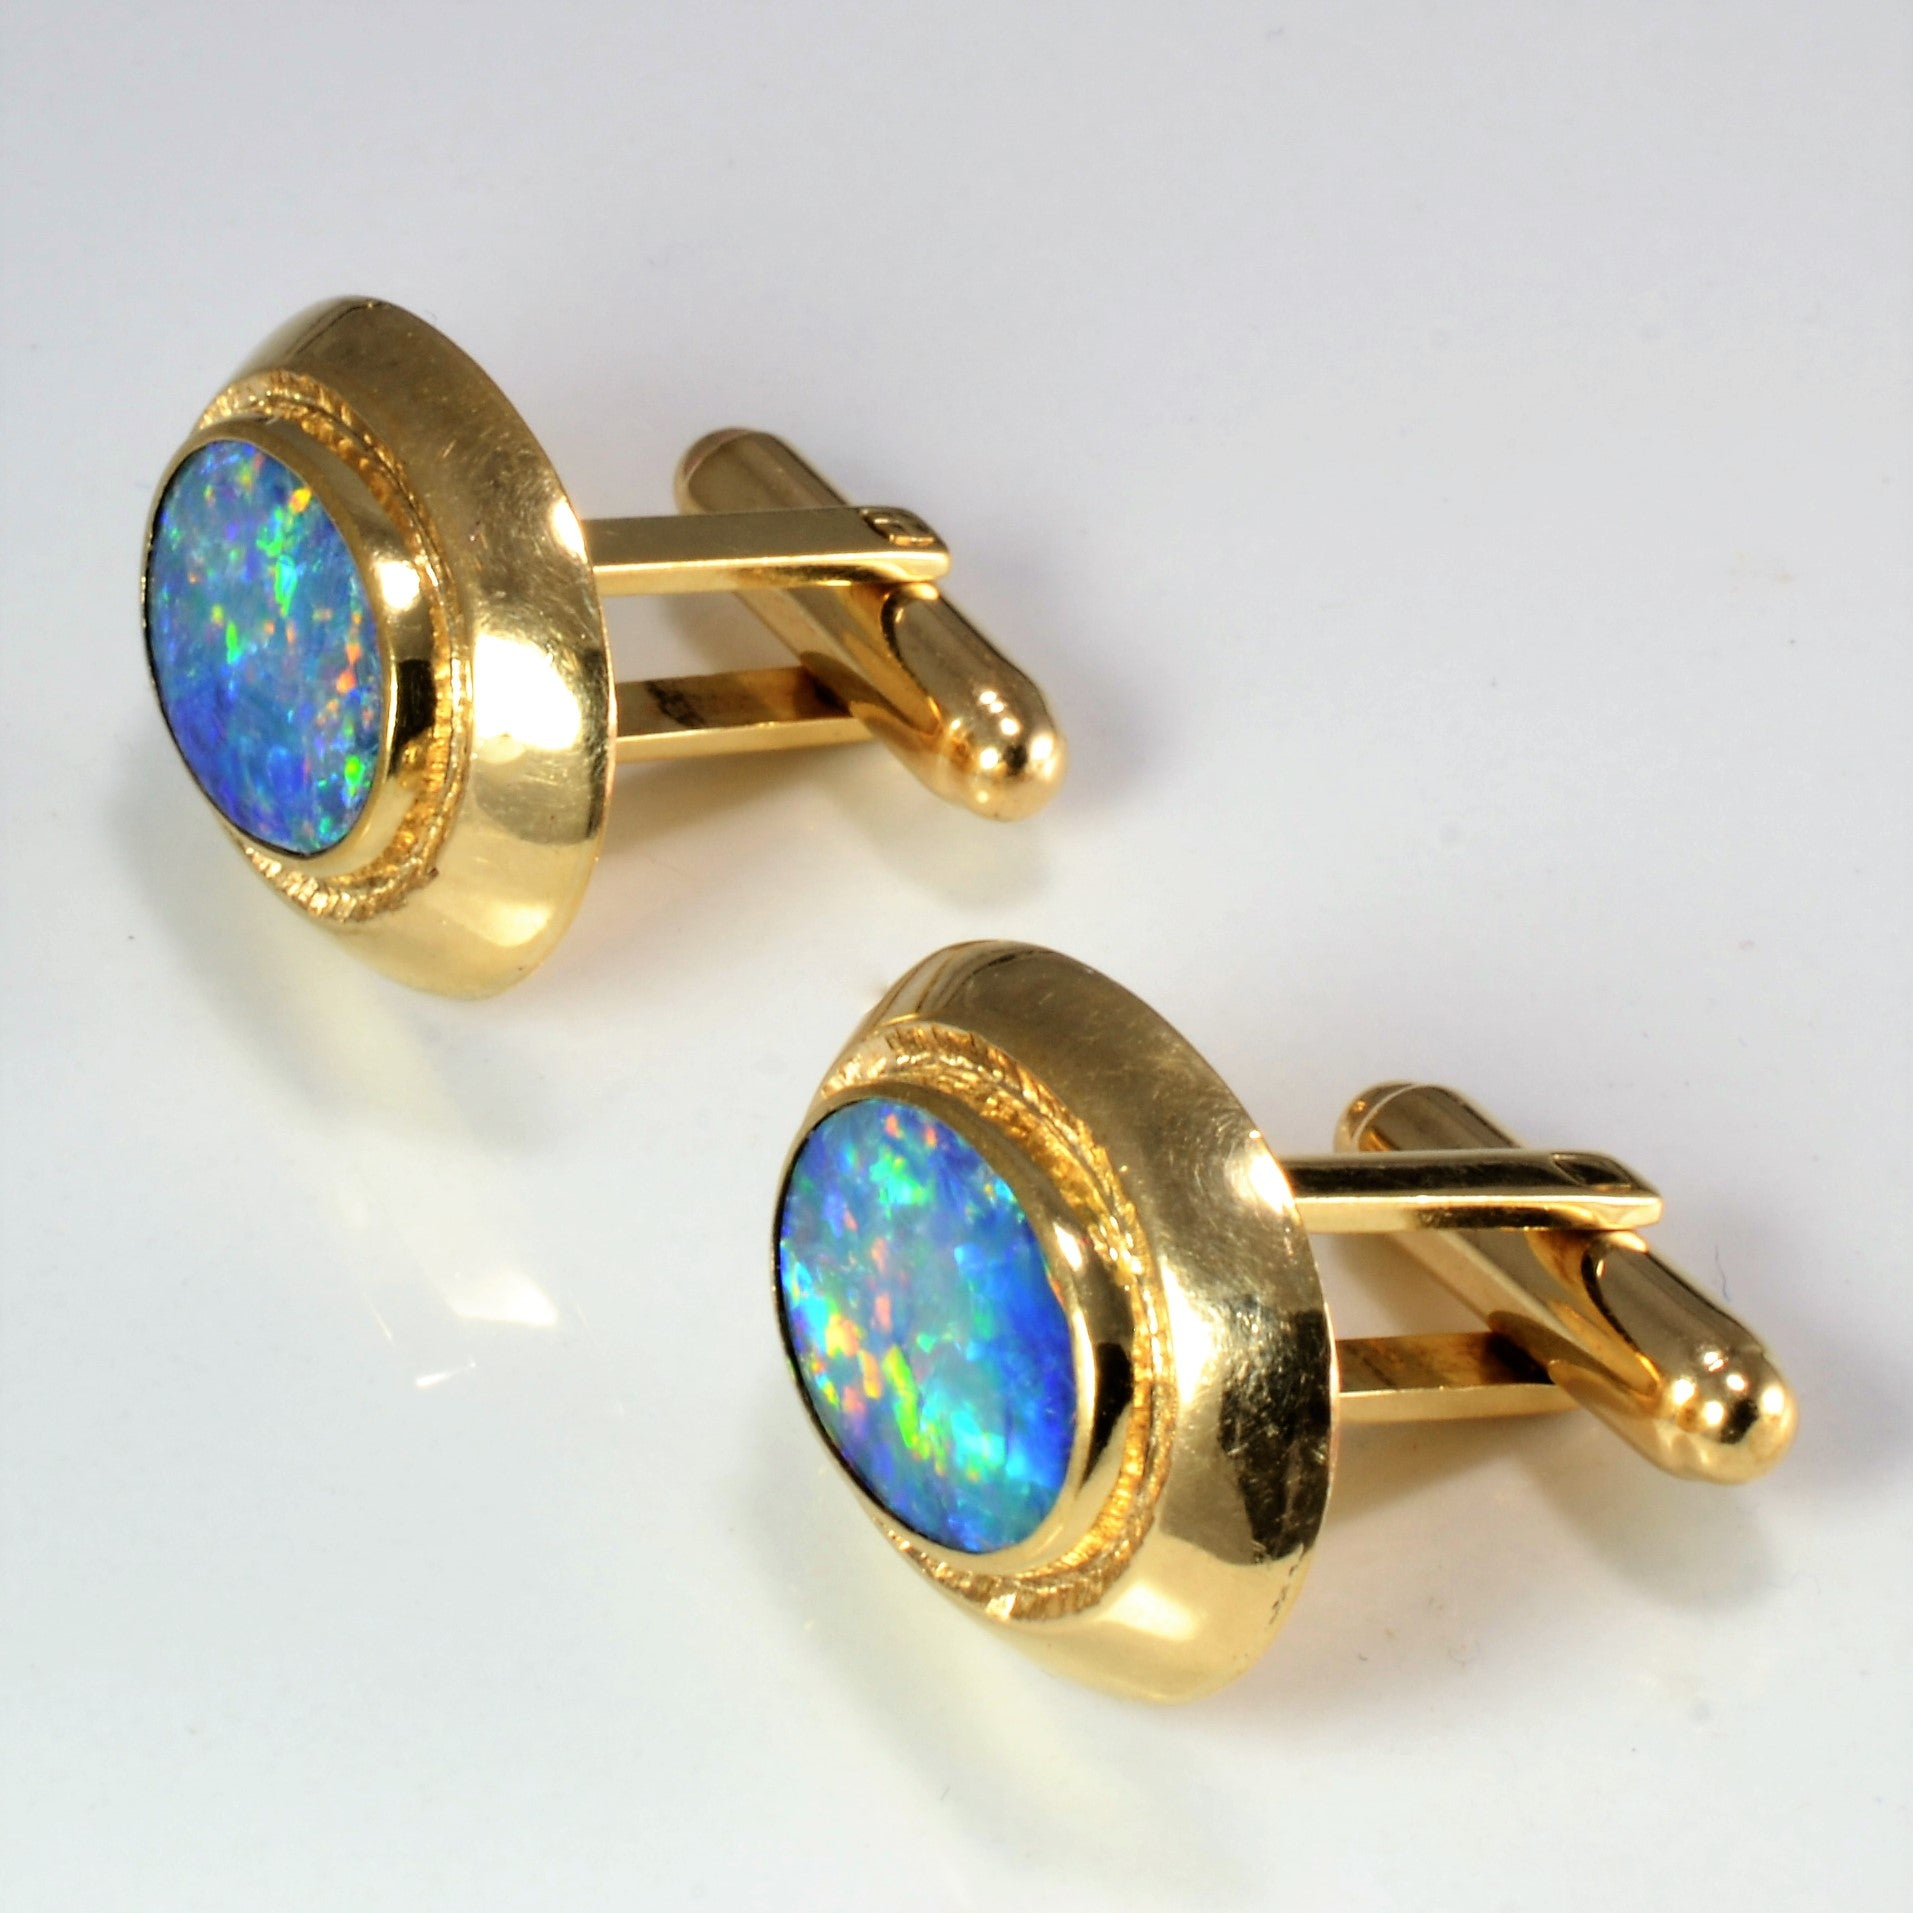 Bezel Set Opal Gold Cuff links